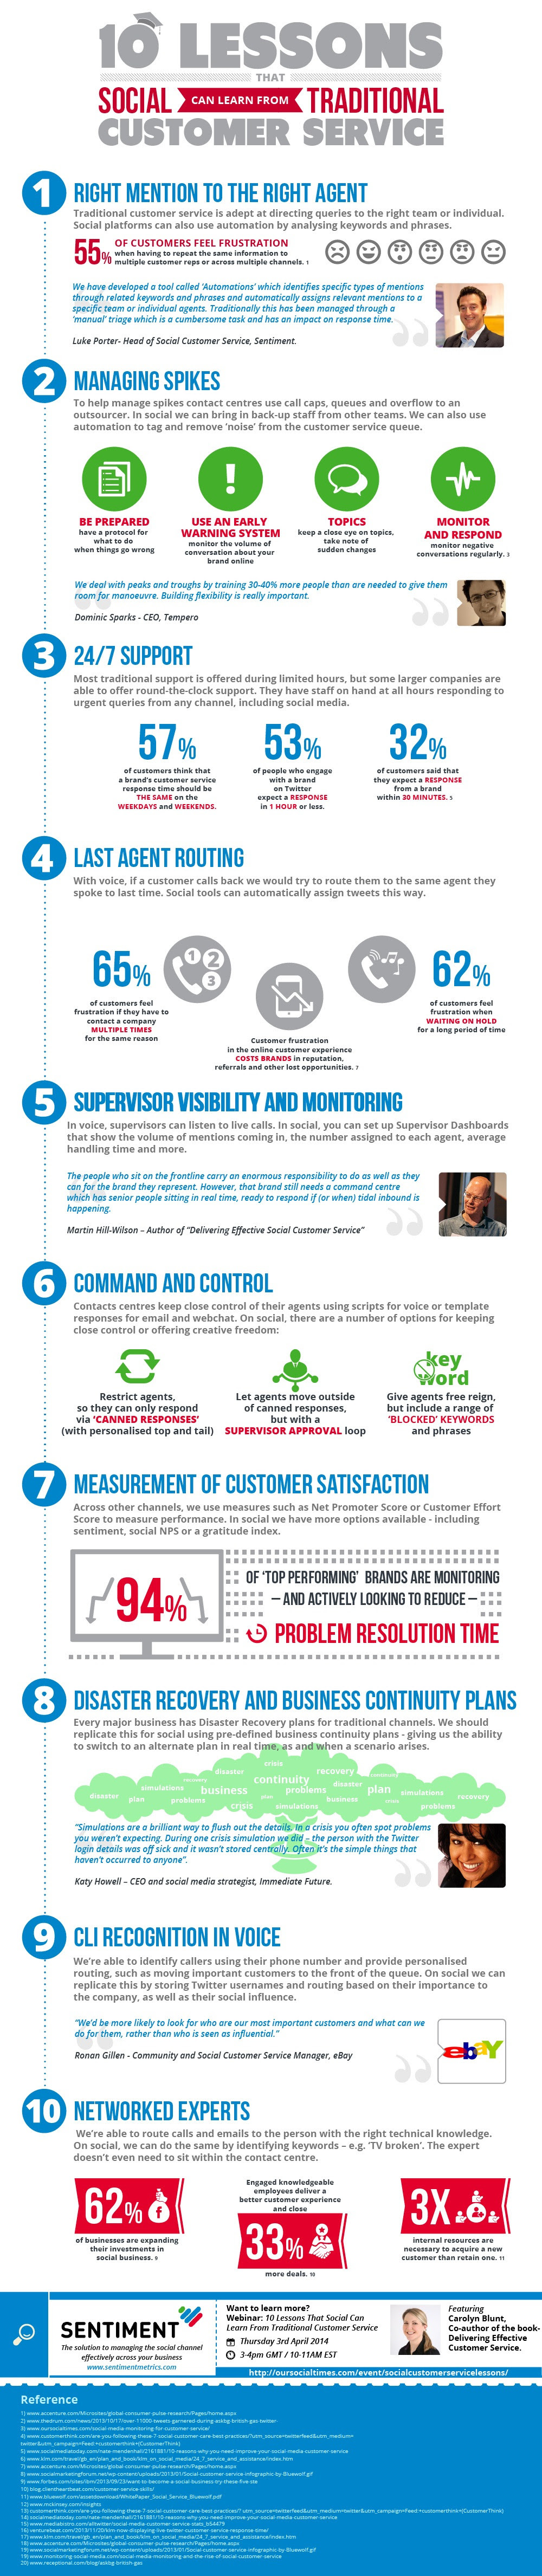 10 Lessons That Social Can Learn From Traditional Customer Service - infographic